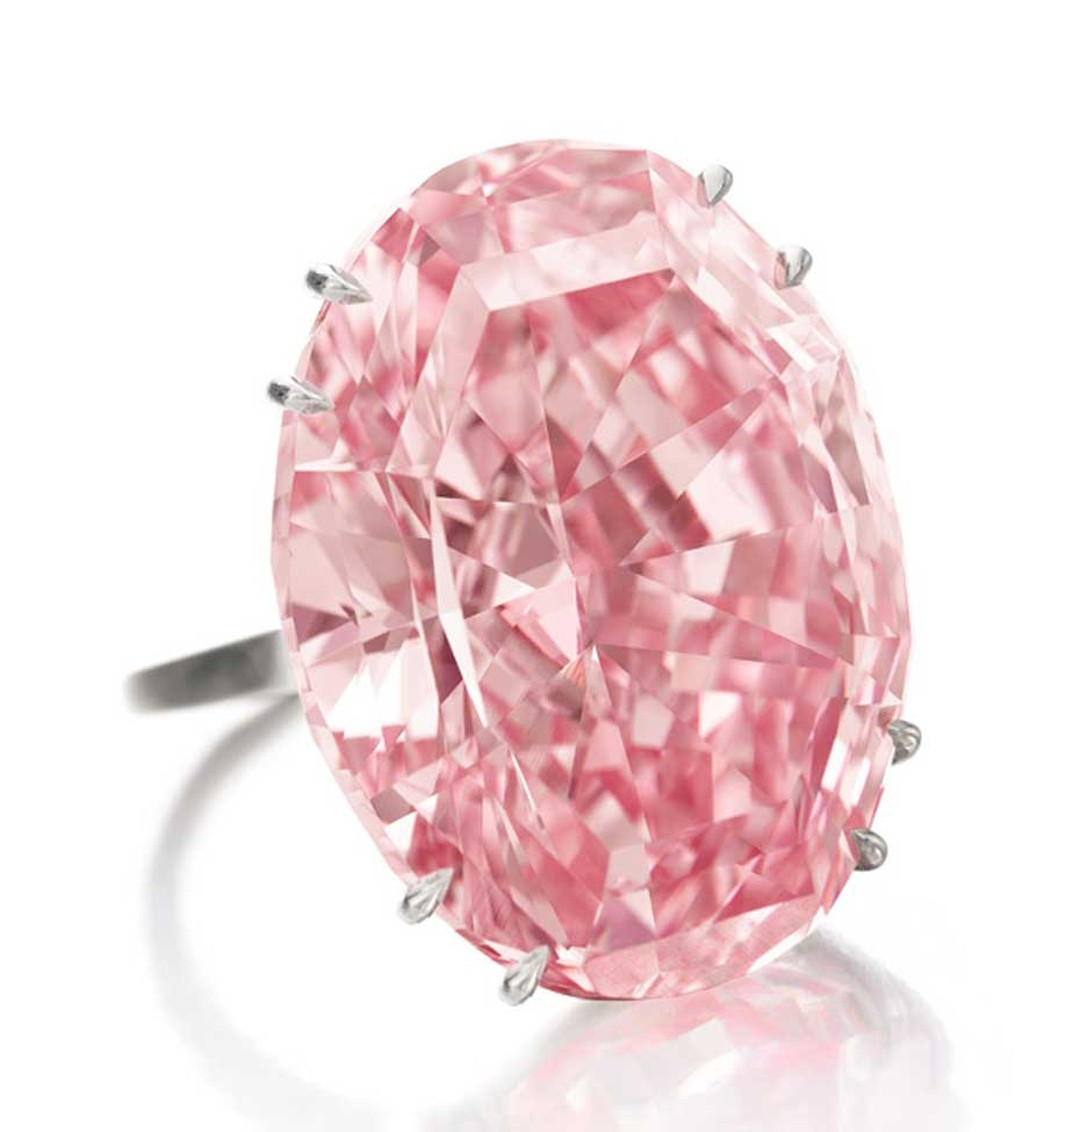 The Steinmetz Pink diamond, discovered by De Beers in South Africa in 1999, weighs 59.60 carats and is a much-prized Fancy Vivid pink colour.